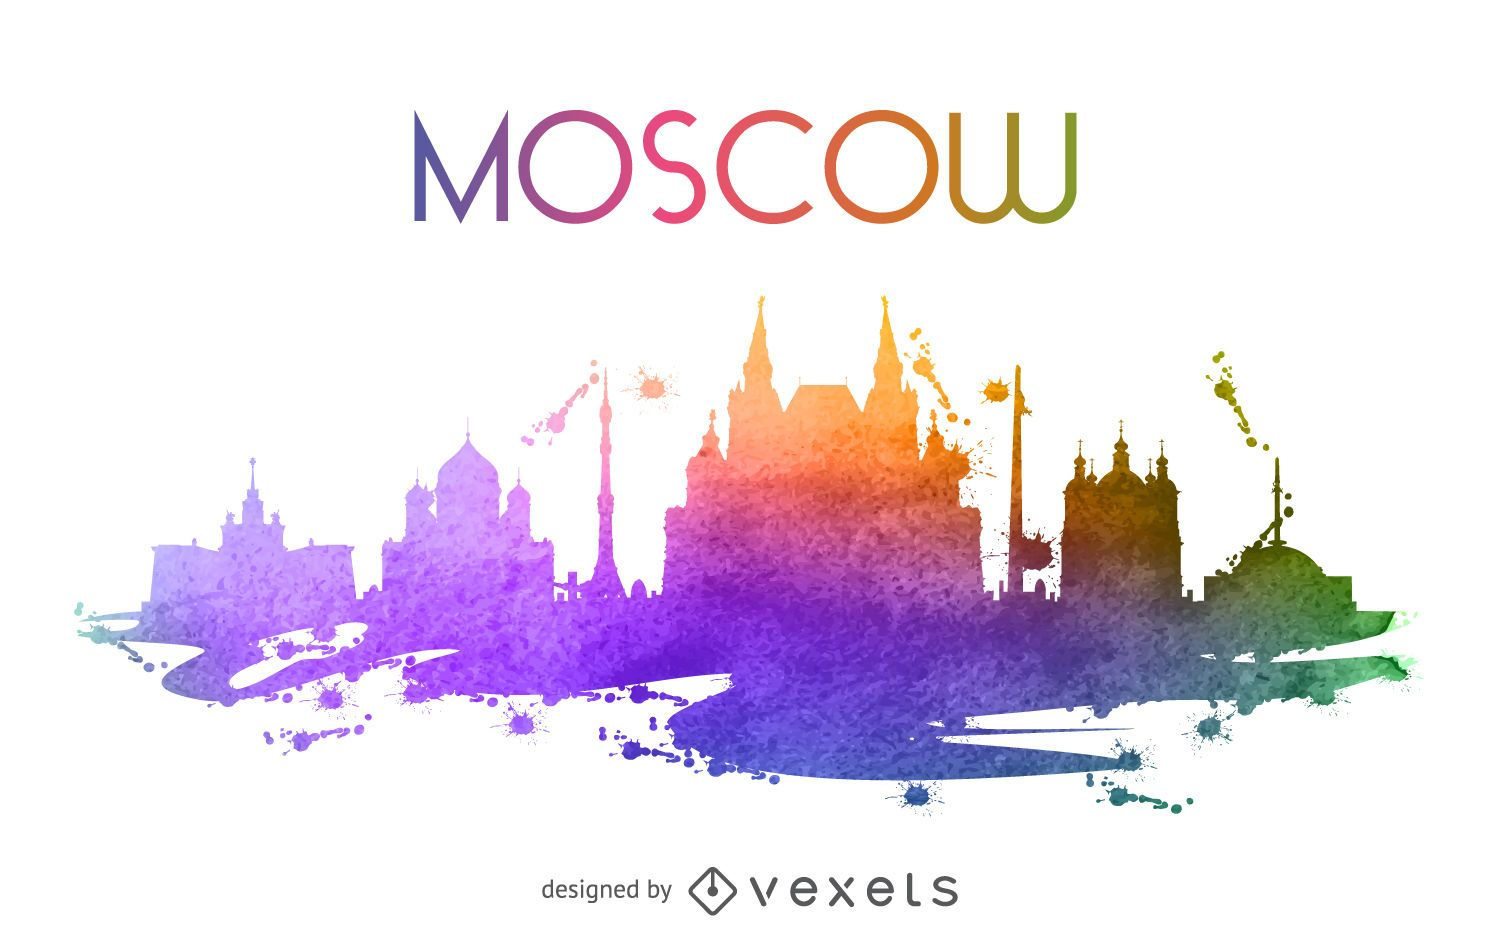 Moscow watercolor skyline illustration